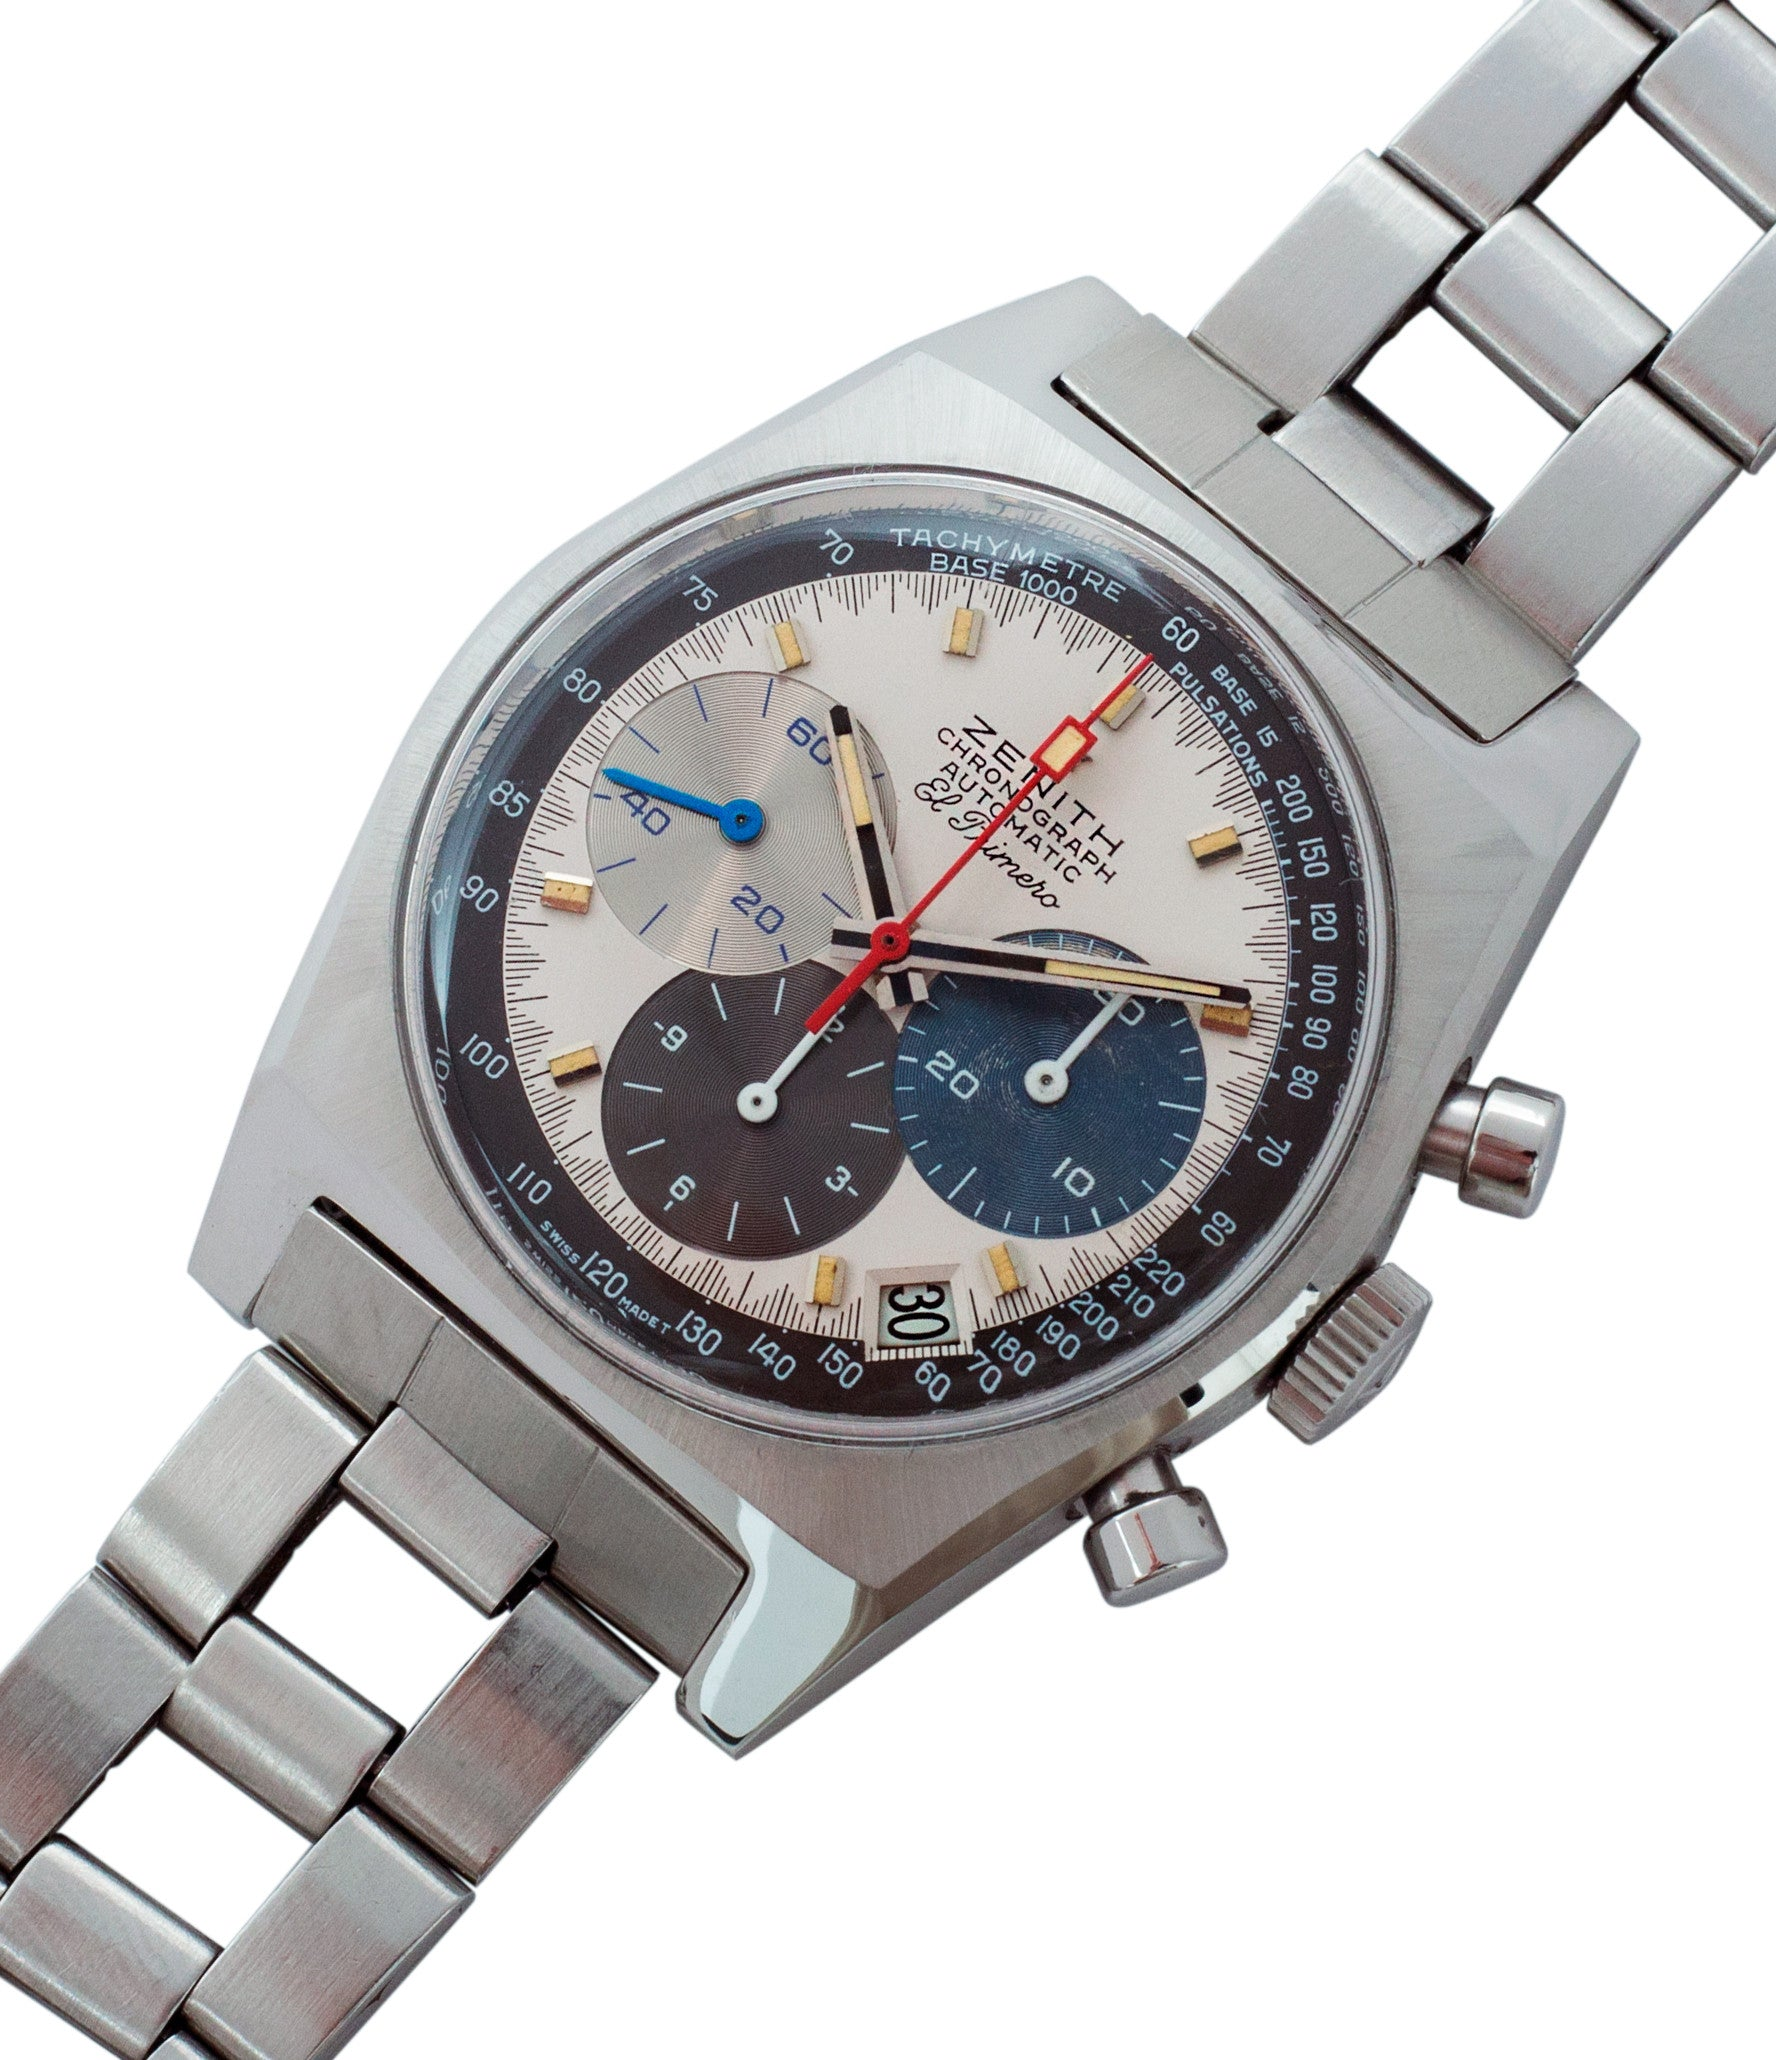 for sale Zenith El Primero A3817 steel automatic chronograph vintage watch for sale online at A Collected Man vintage rare watch specialist